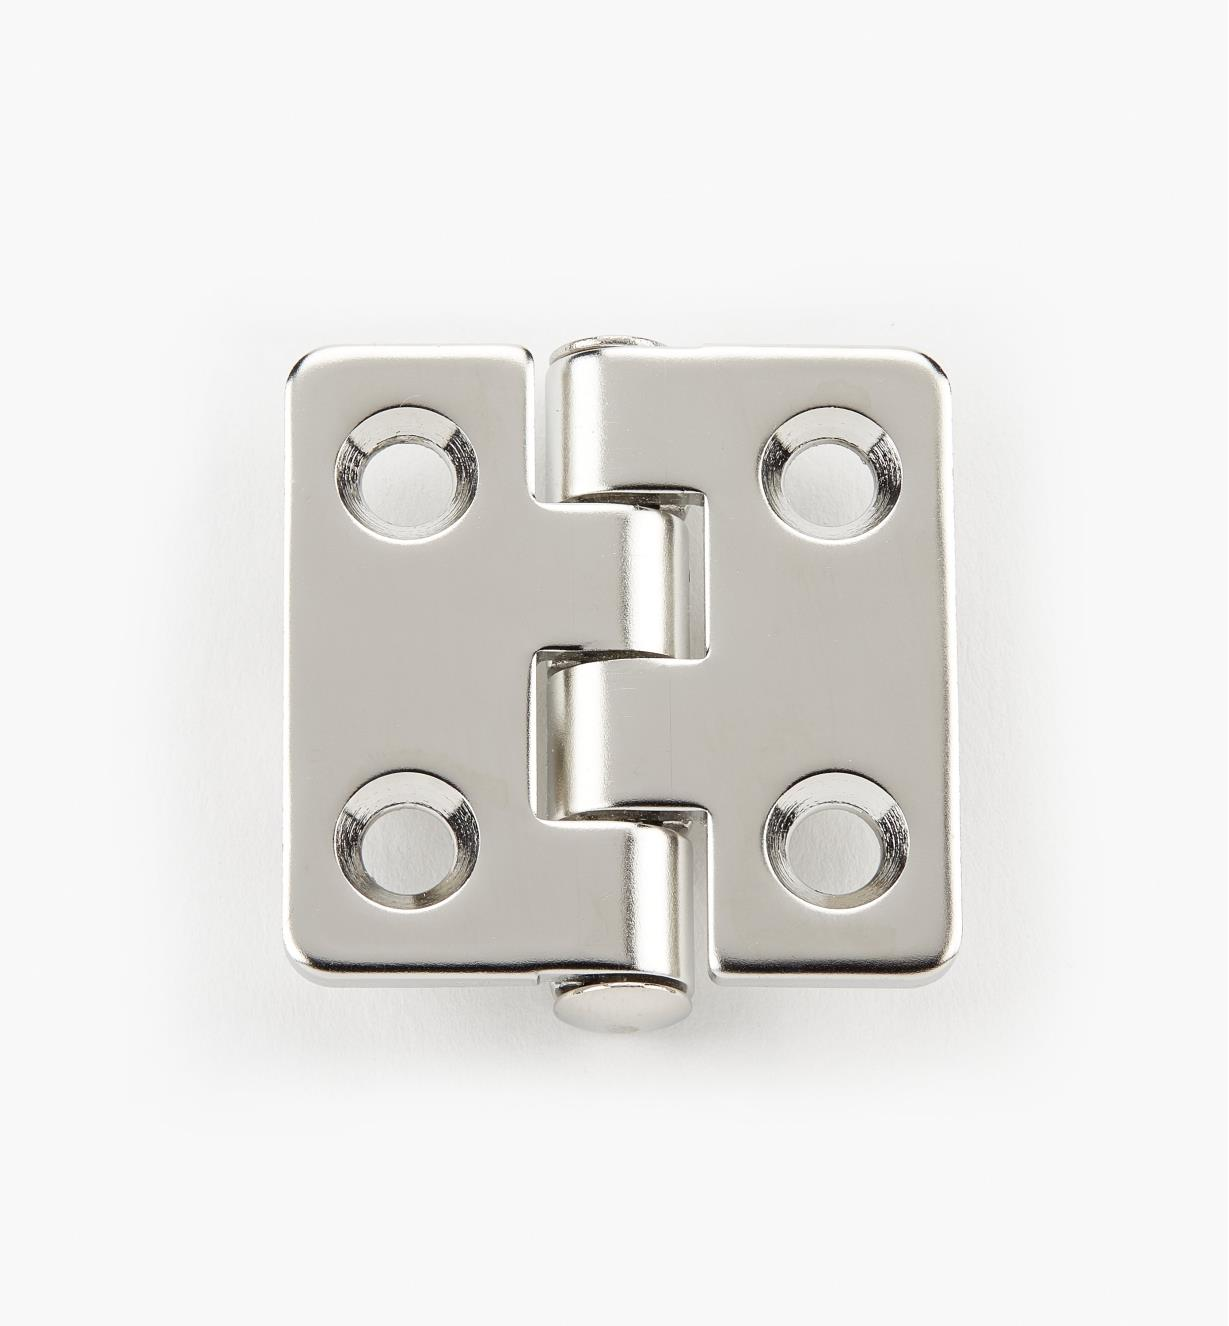 01W9850 - 38mm x 19mm x 19mm Recessed/Flush Hinge